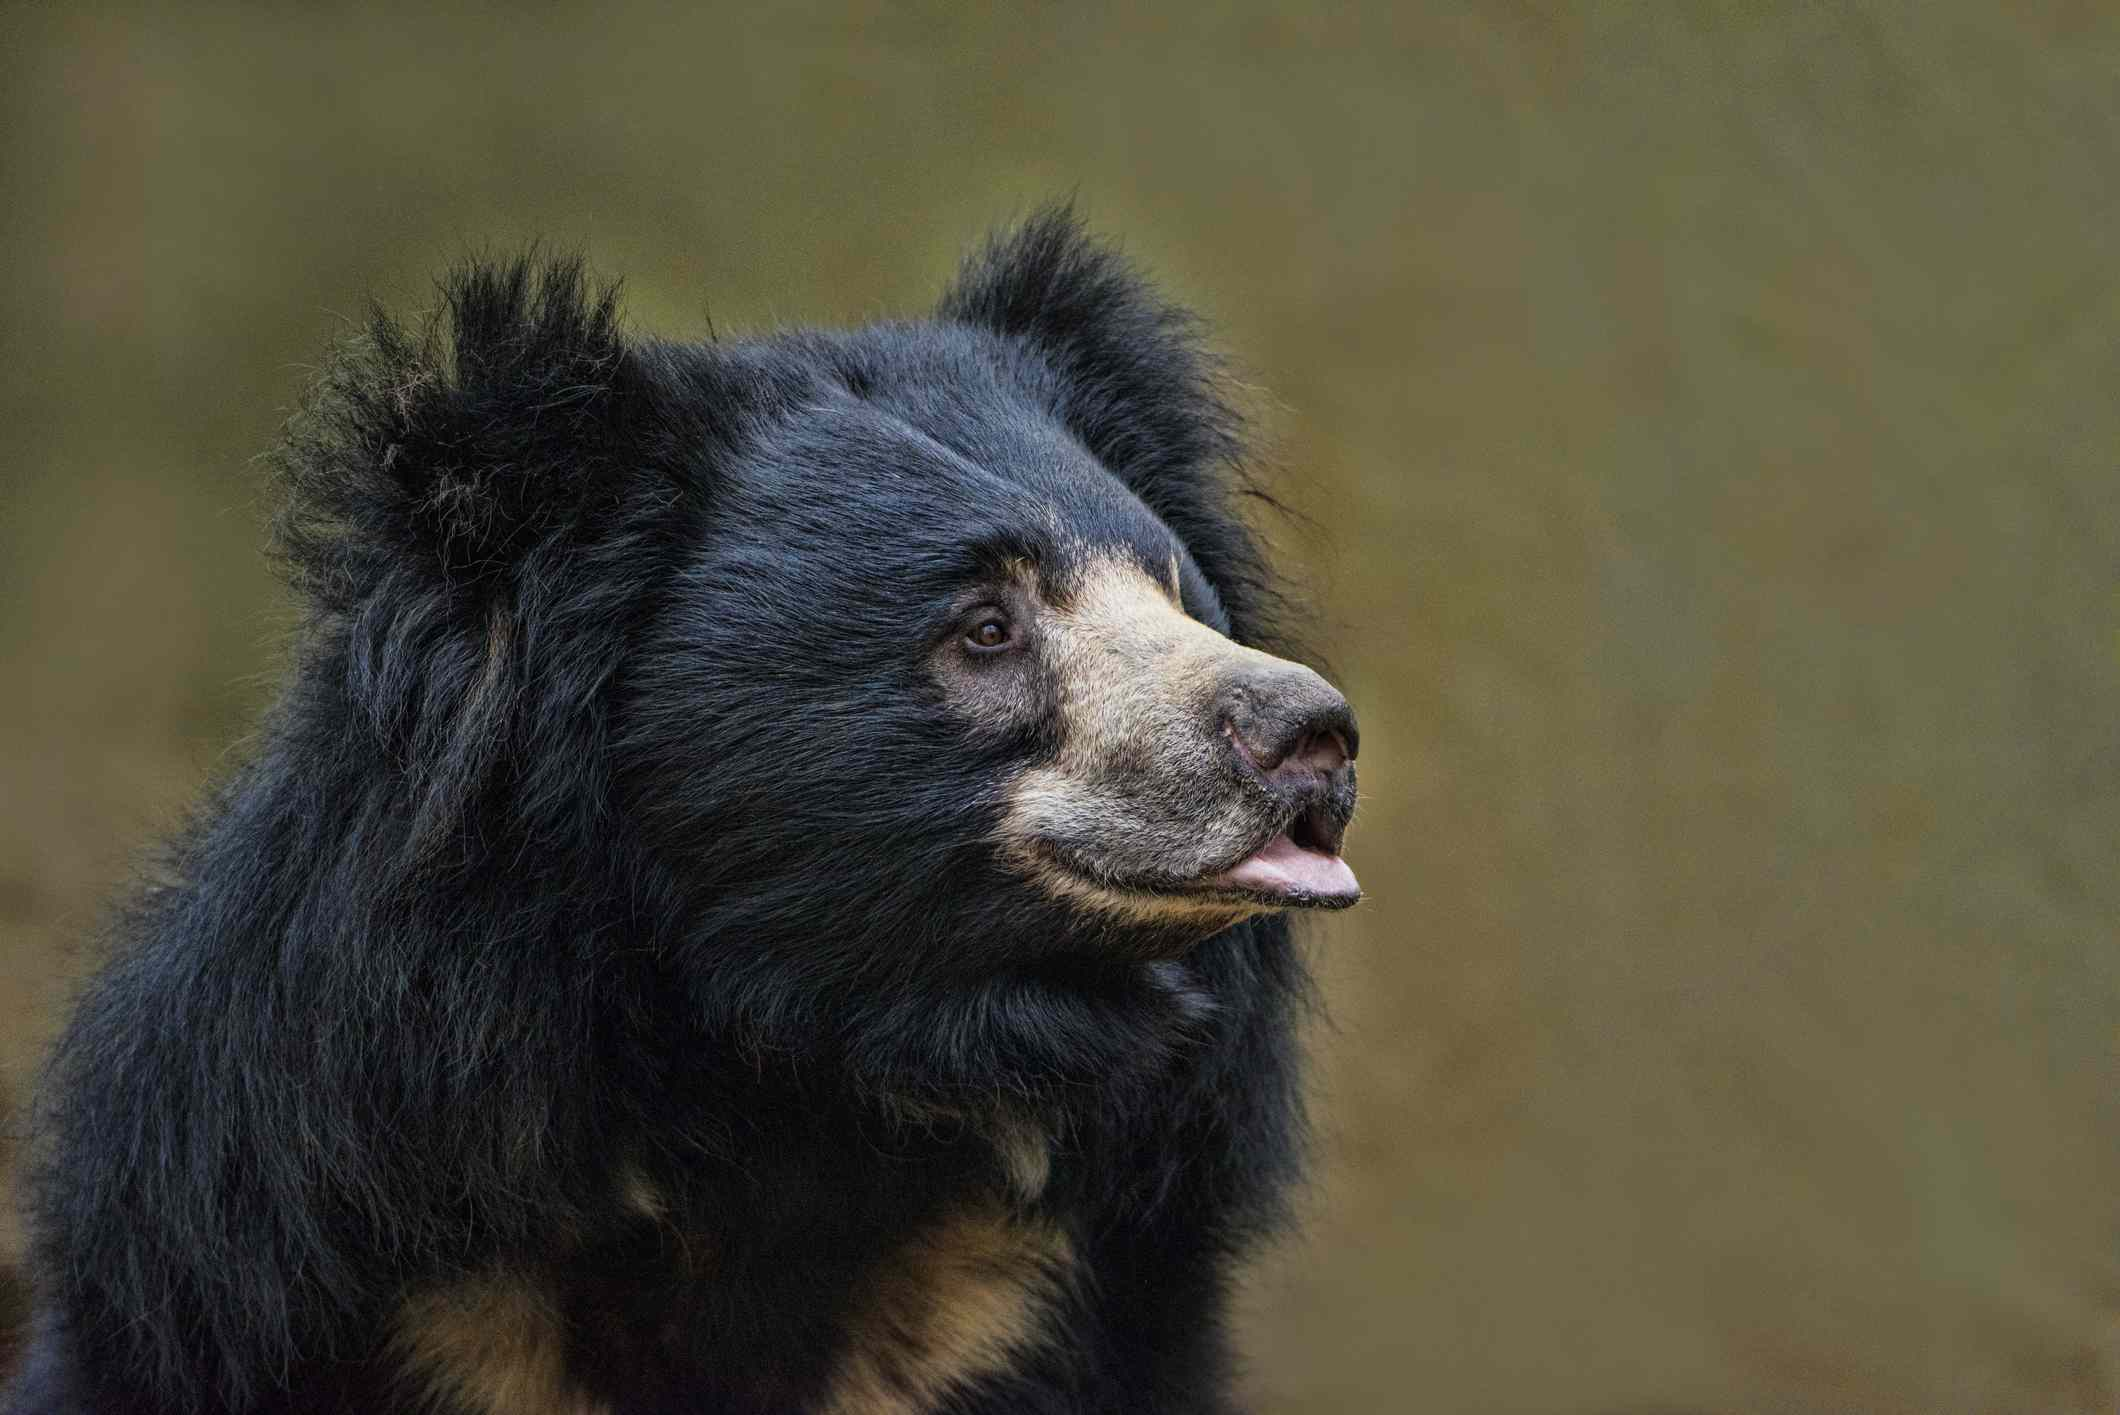 profile of black sloth bear with tan markings and lower lip jutting out